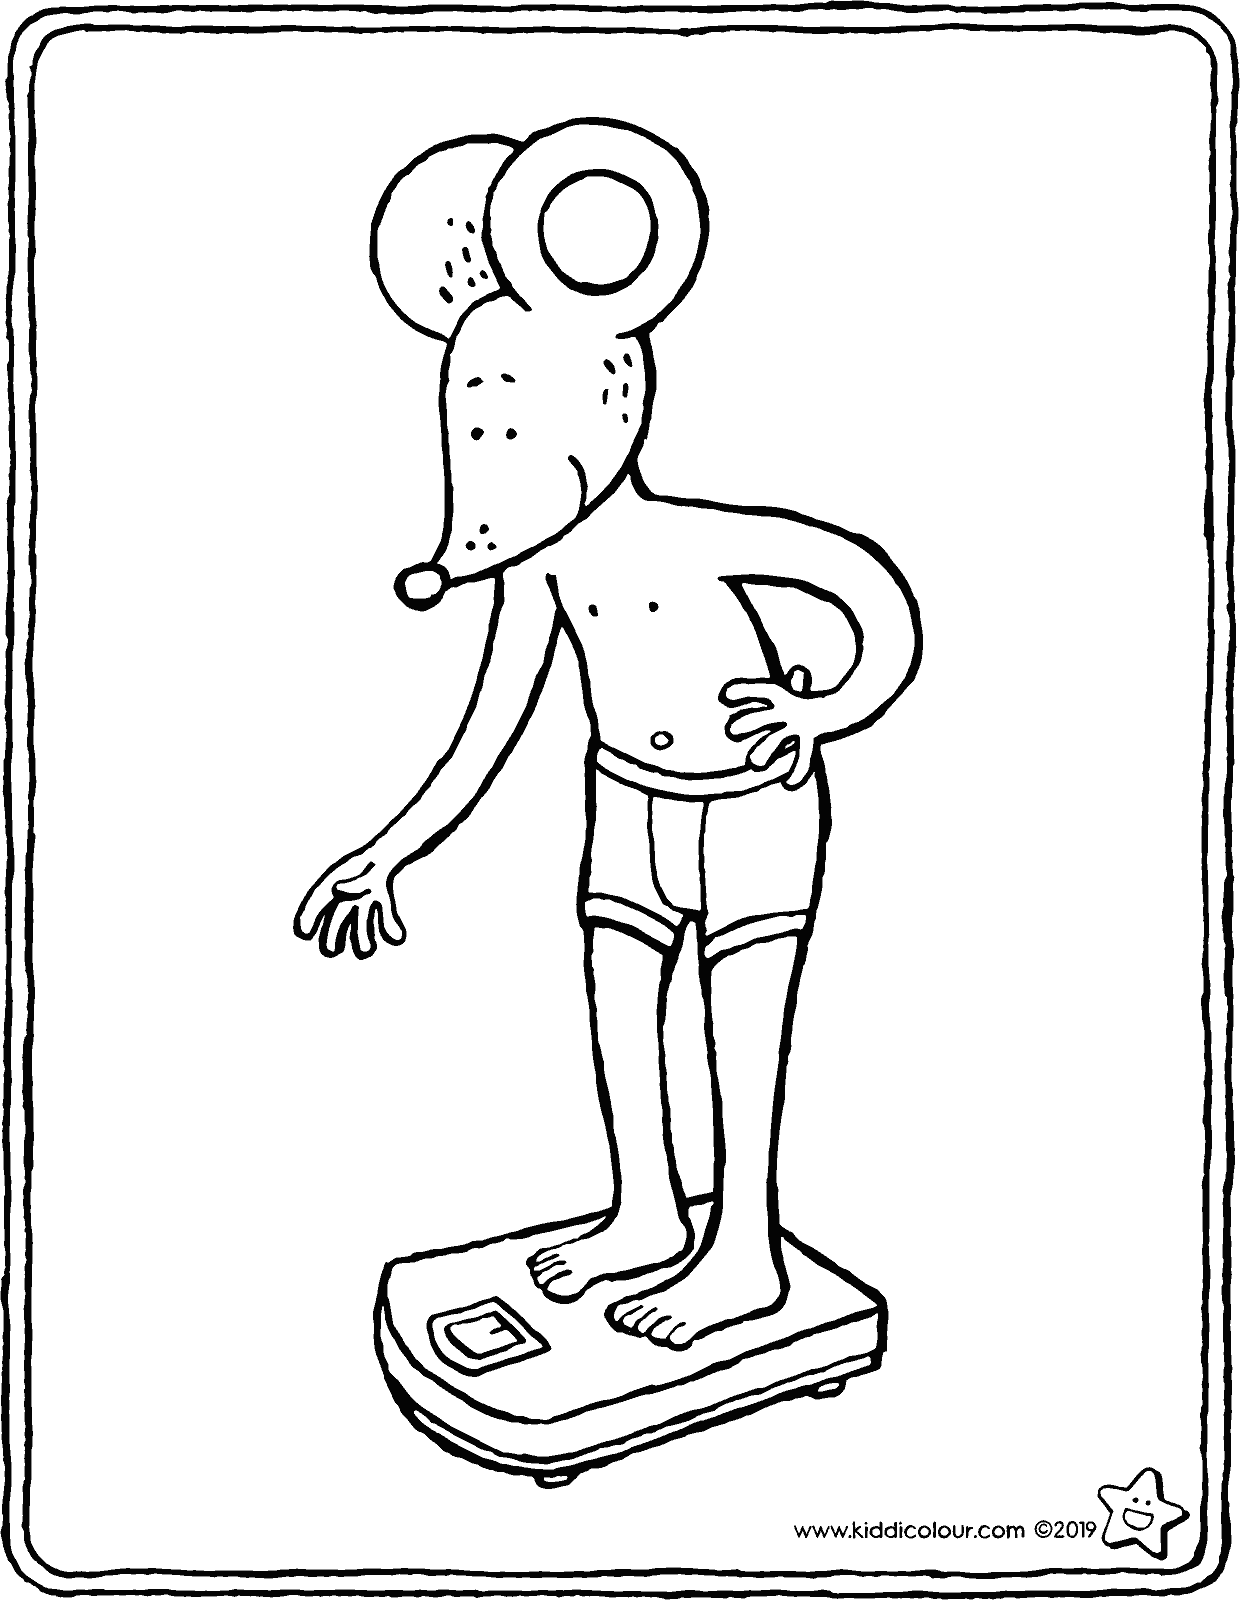 Thomas stands on the scales colouring page drawing picture 01V